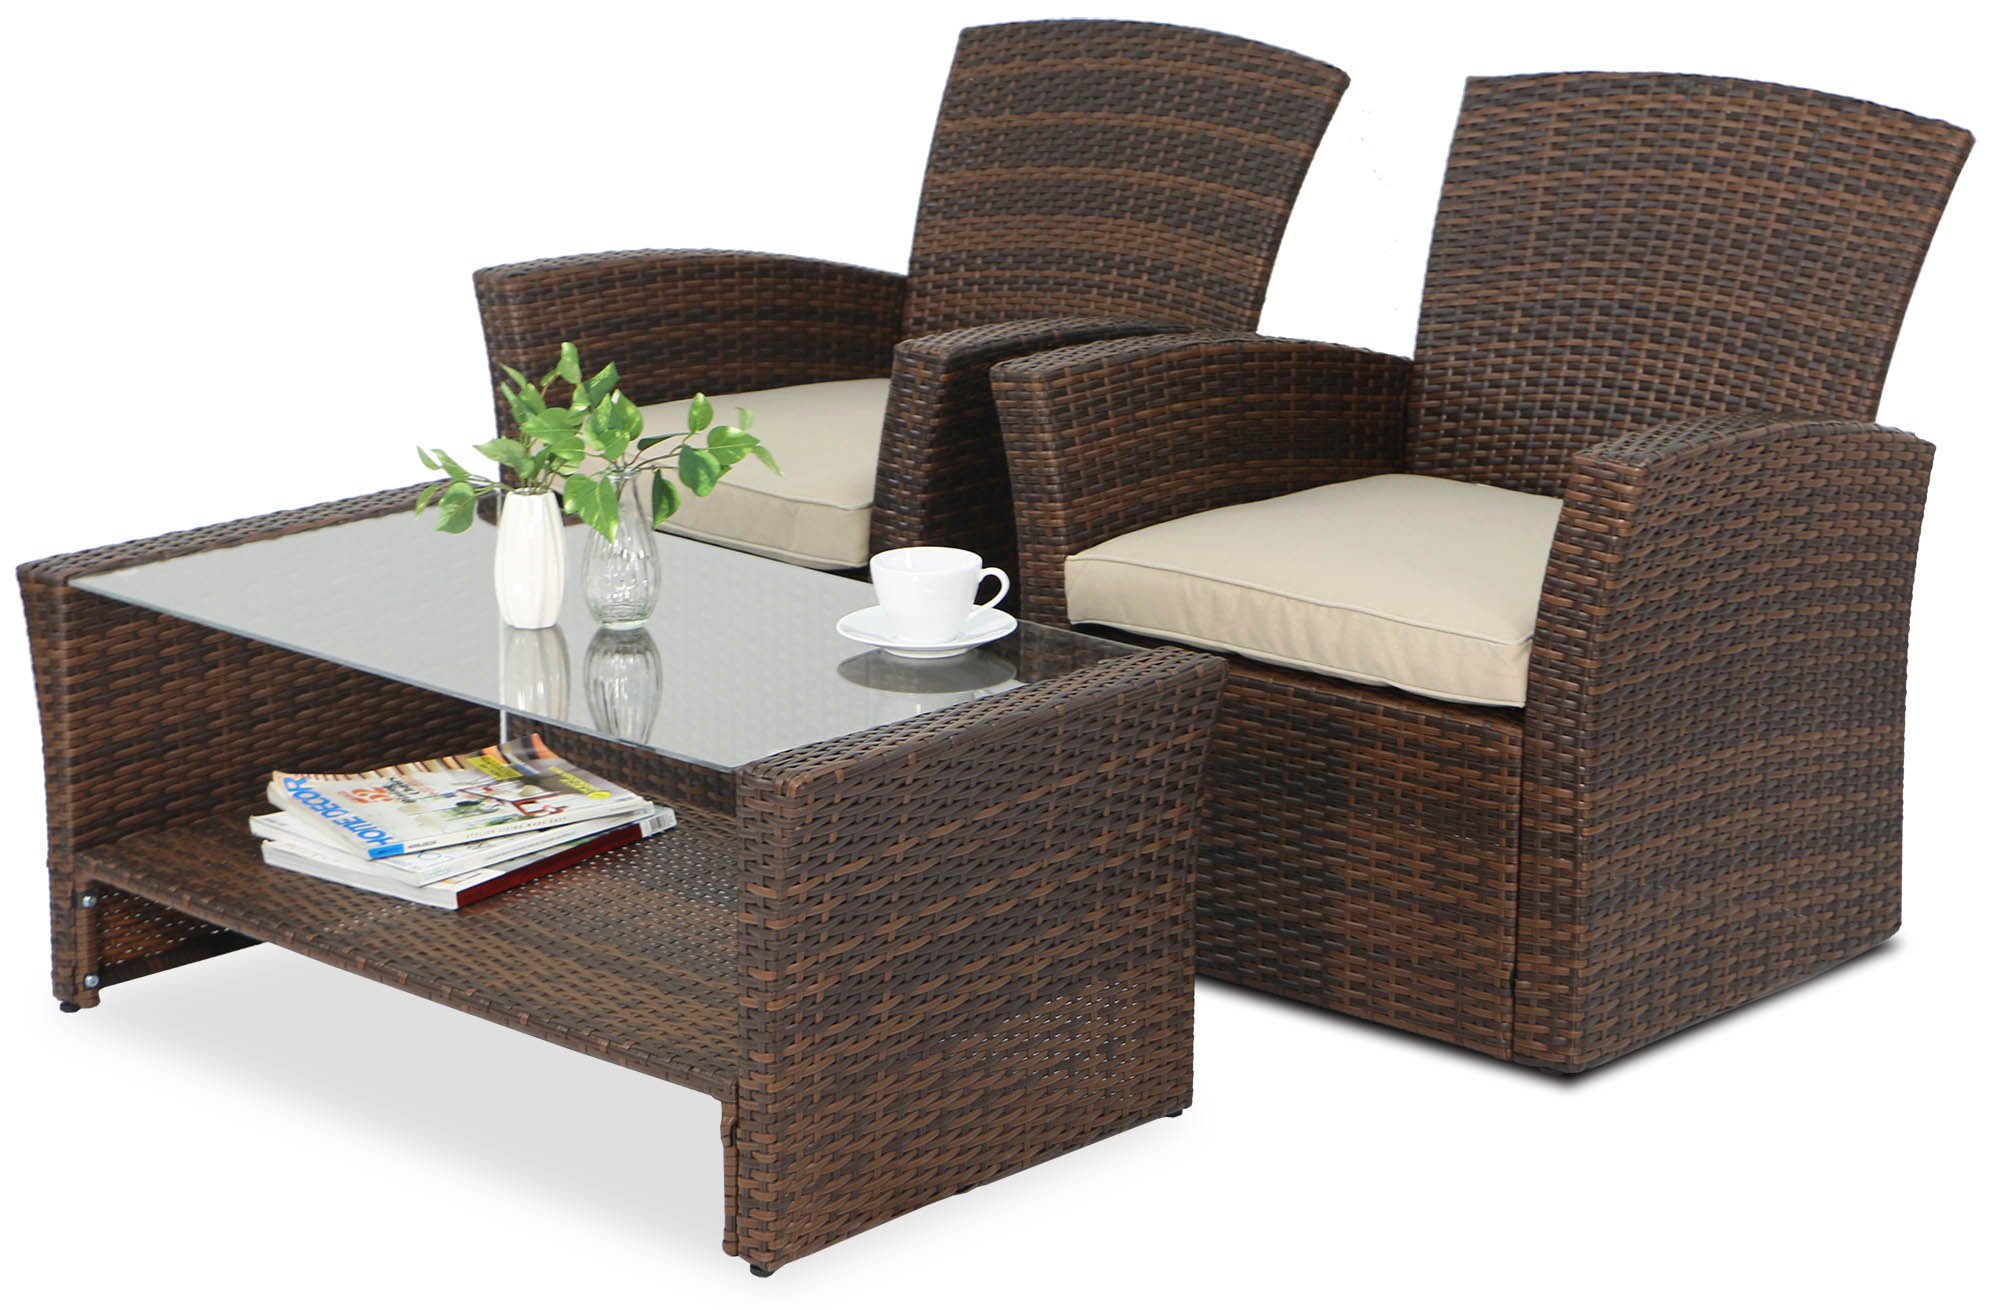 Beaumont Synthetic Rattan Outdoor Sofa Set Brown Display Gallery Item 1 2